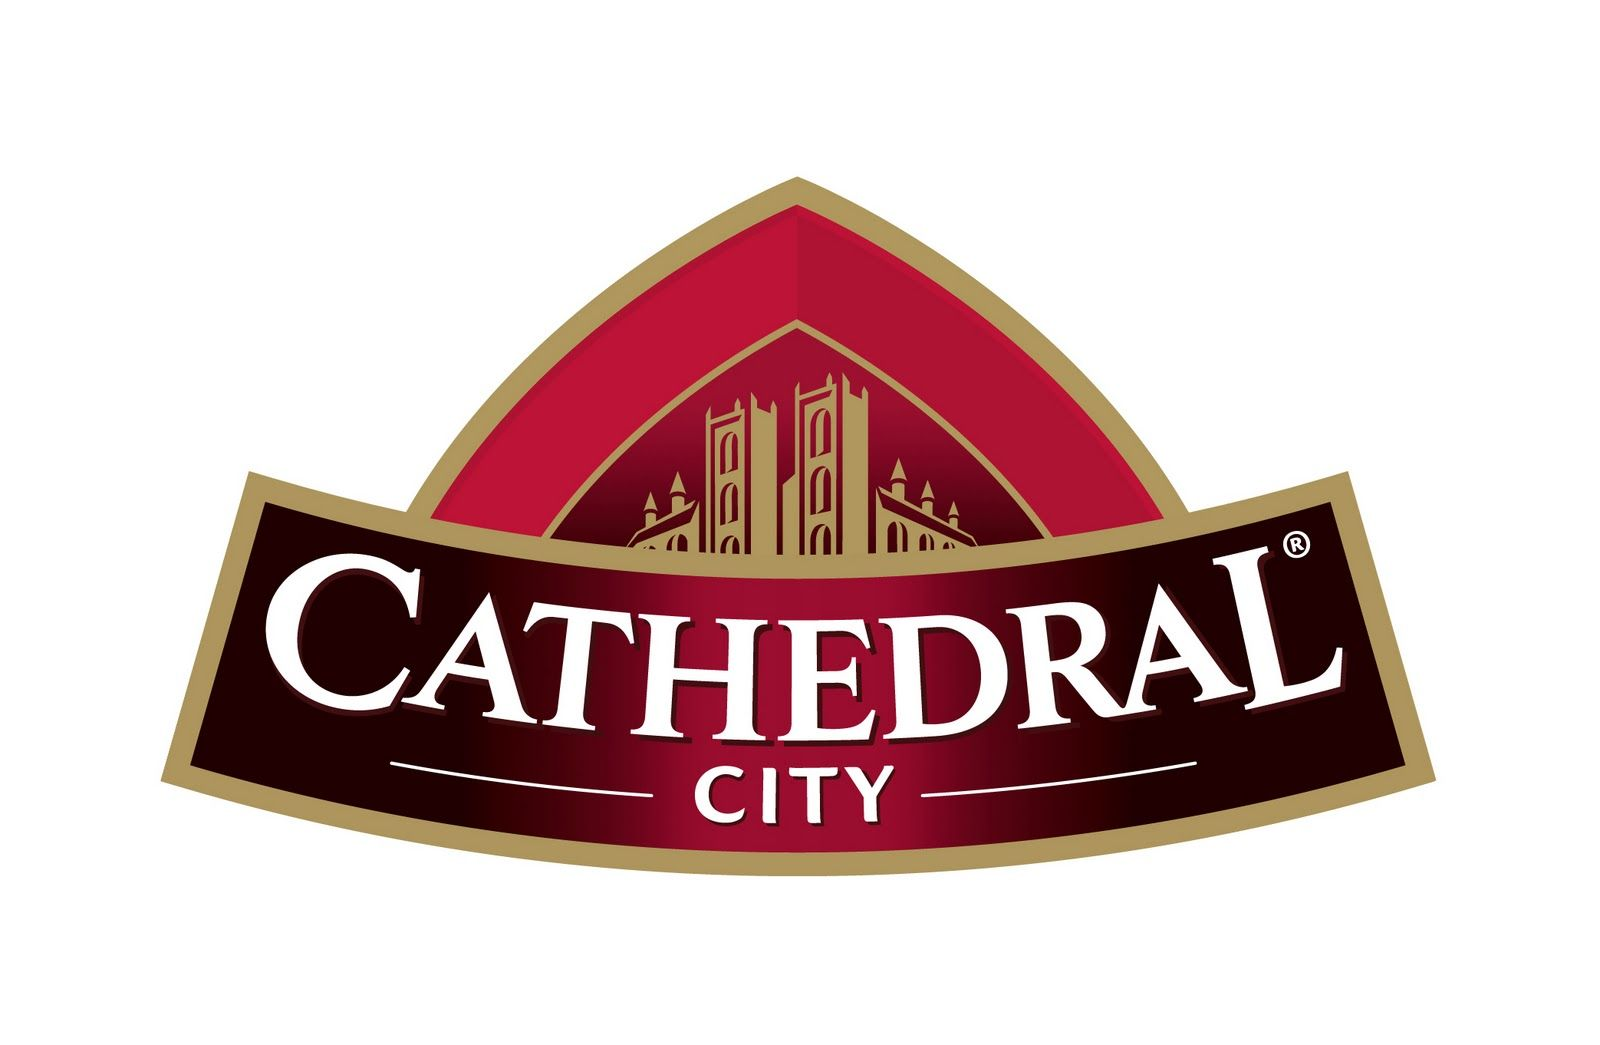 christian single men in cathedral city Meet singles over 50 in cathedral city interested in meeting new people to date on zoosk over 30 million single people are using zoosk to find people to date.